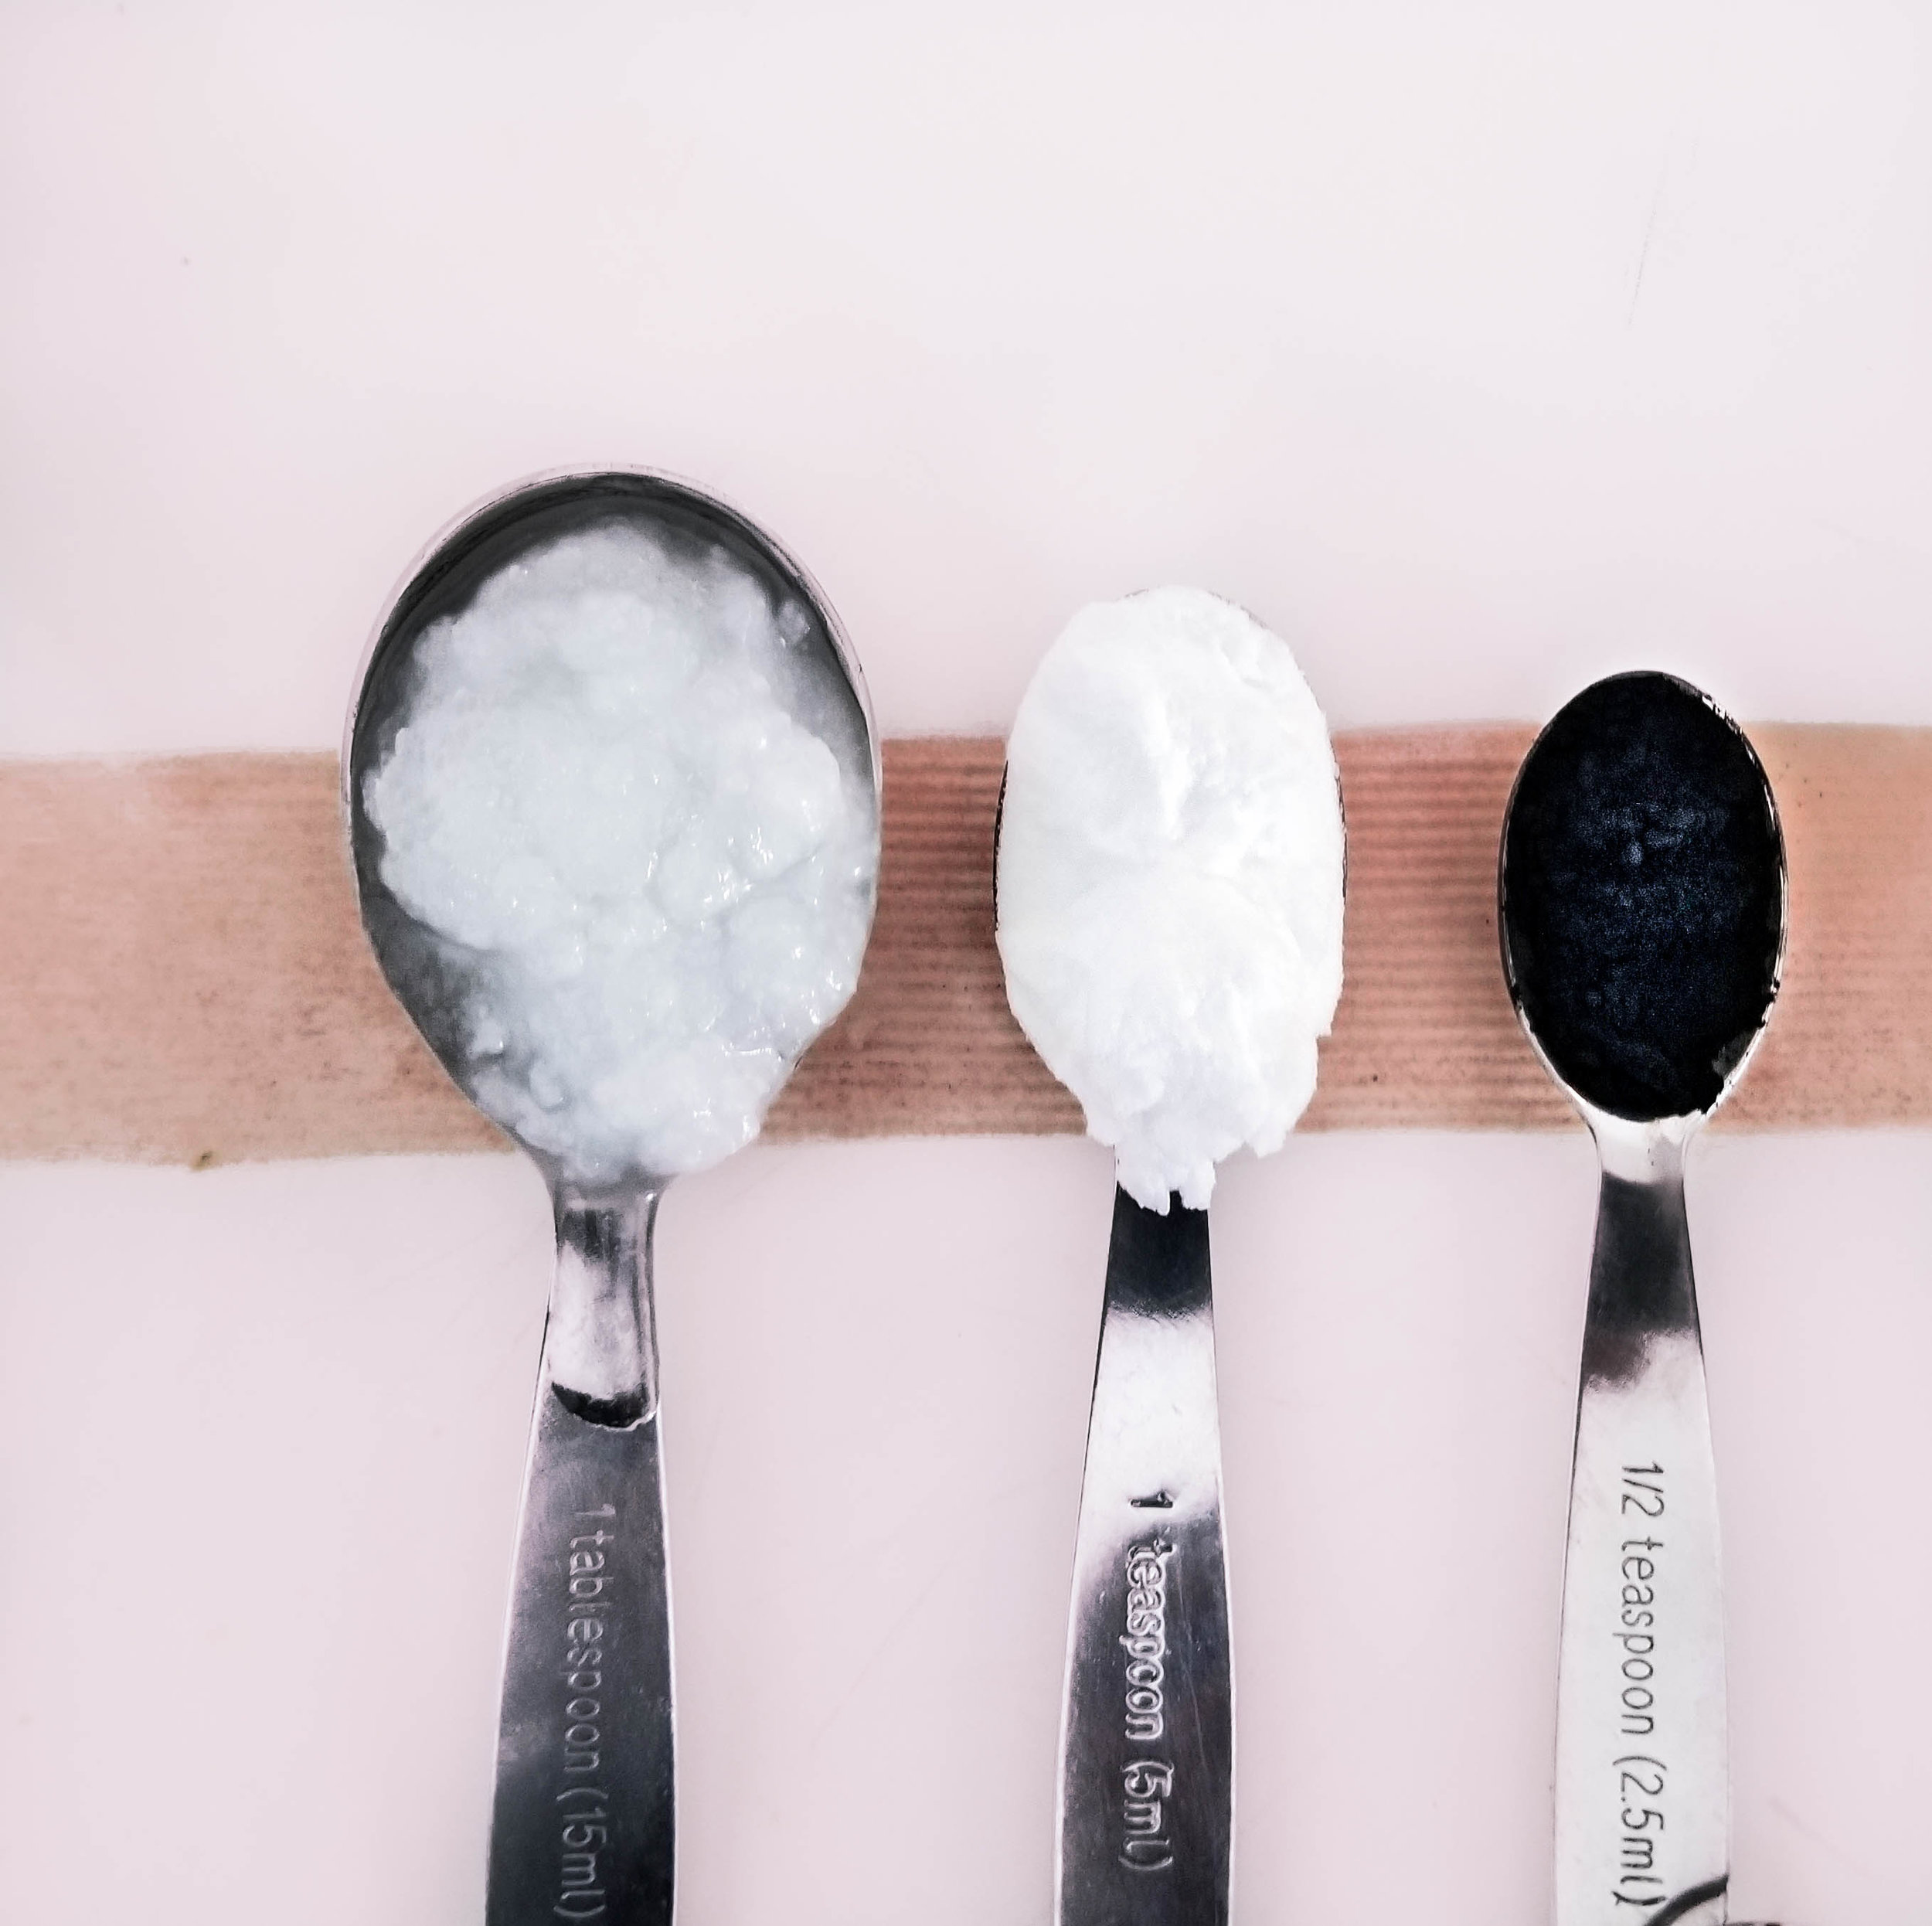 baking soda, virgin coconut oil, and activated charcoal for beauty and teeth whitening